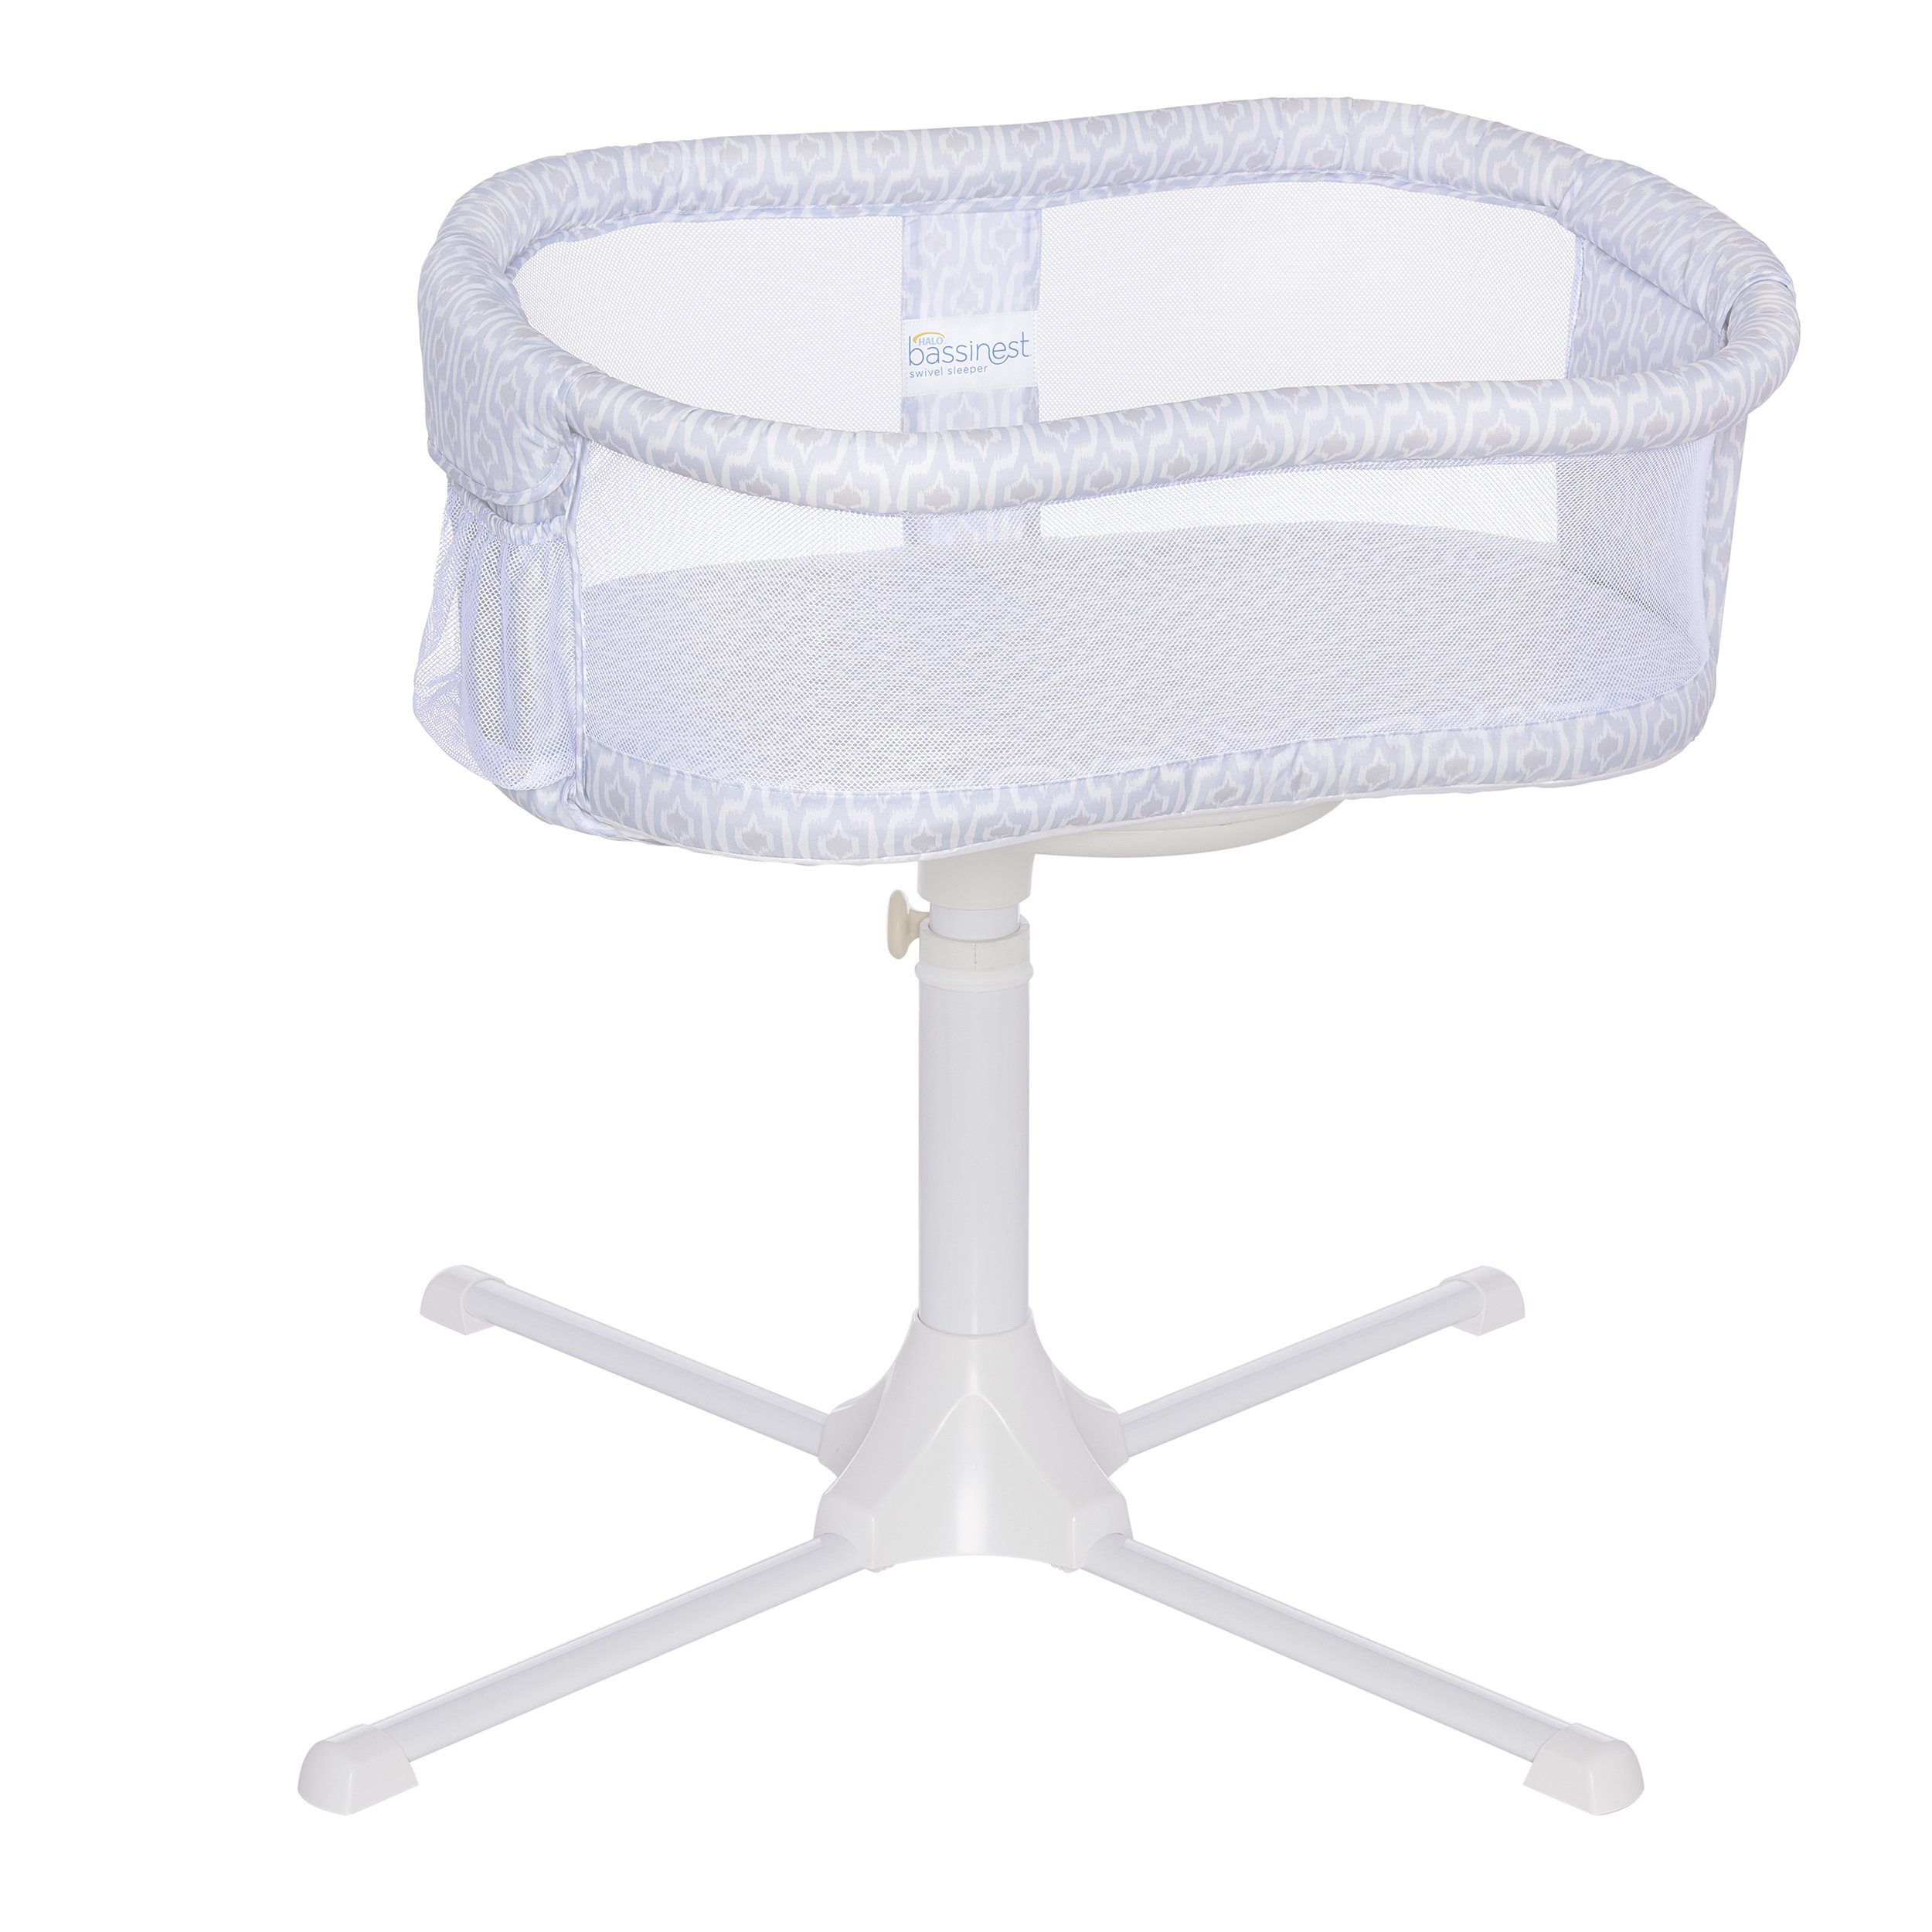 HALO Bassinest Swivel Sleeper Bassinet - Essentia Series, Blue Ikat